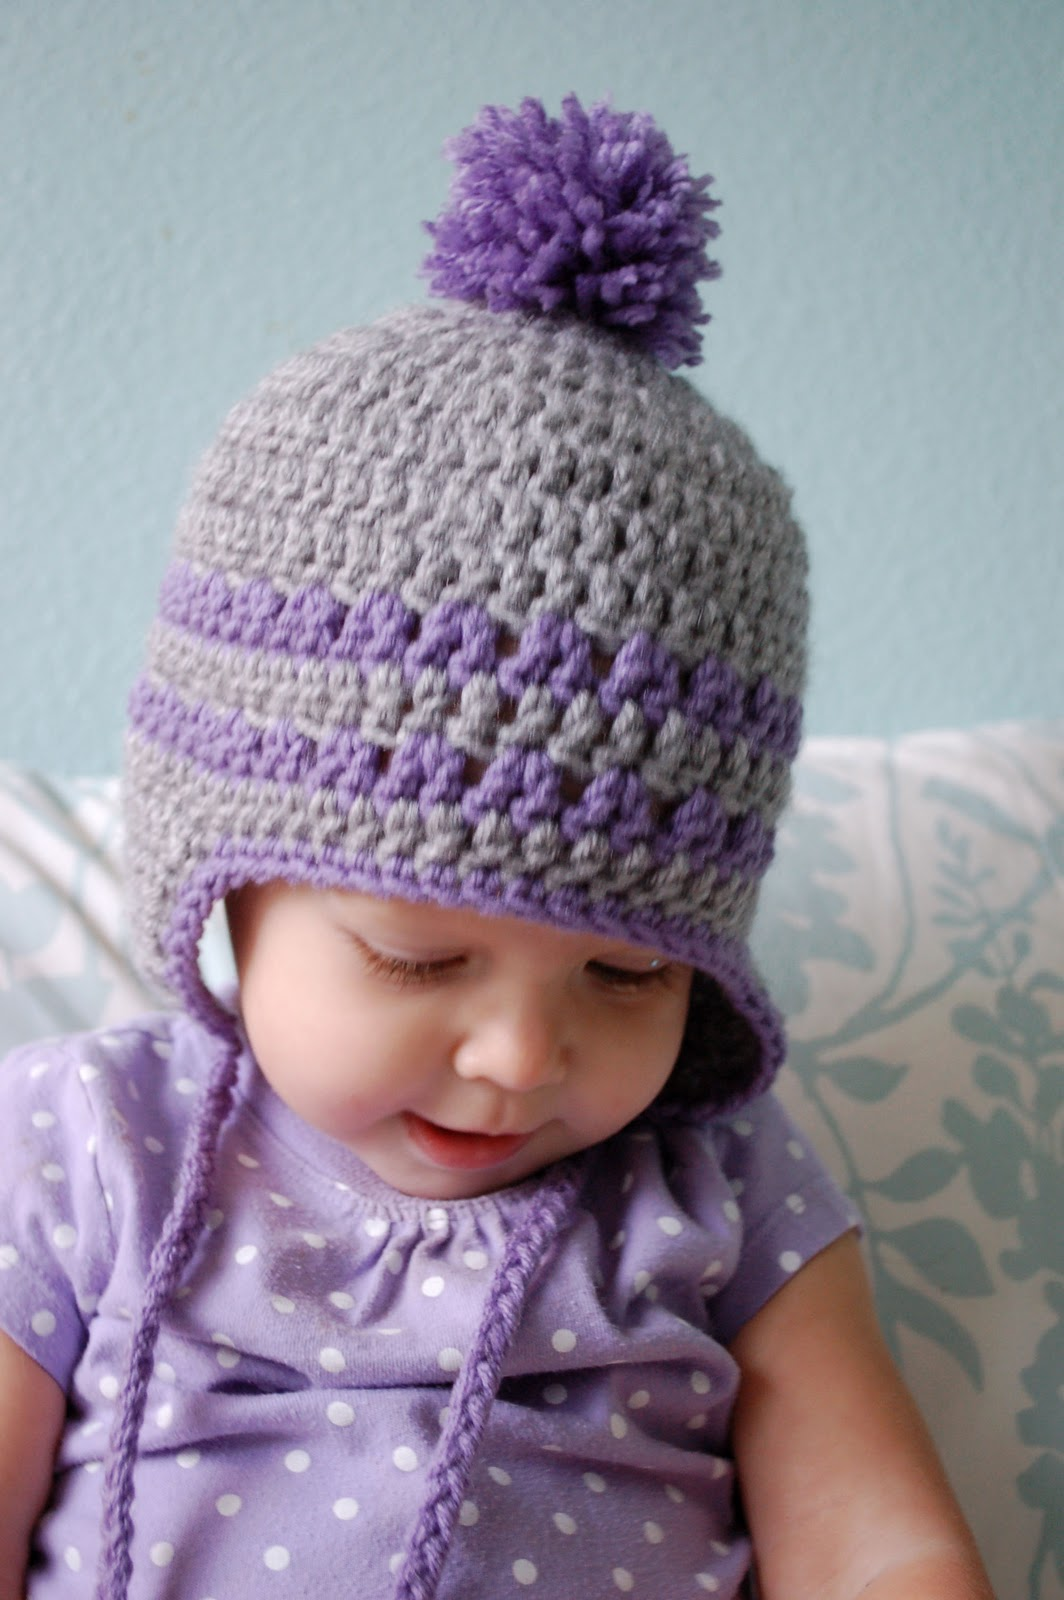 Free Crochet Pattern Toddler Hat Ear Flaps : Alli Crafts: Free Pattern: Earflap Hat - 9-12 Months